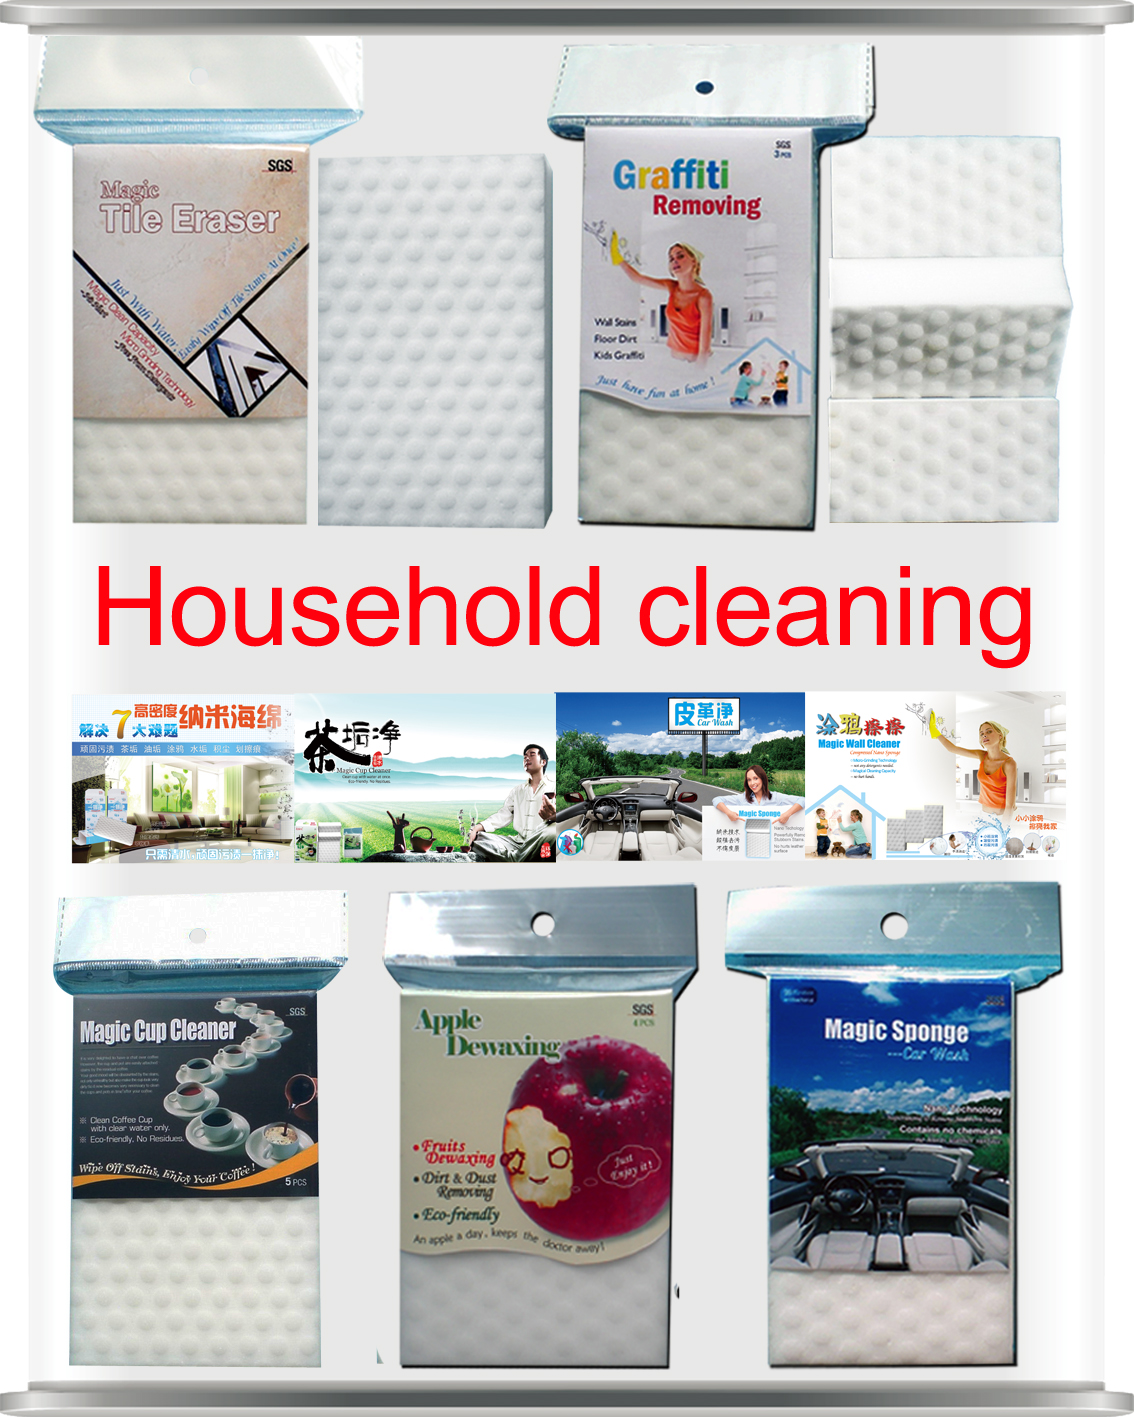 Compressed melamine sponge for floor cleaning wall cleaning and apple dewax ,magic sponge wipe off cup and leather stains